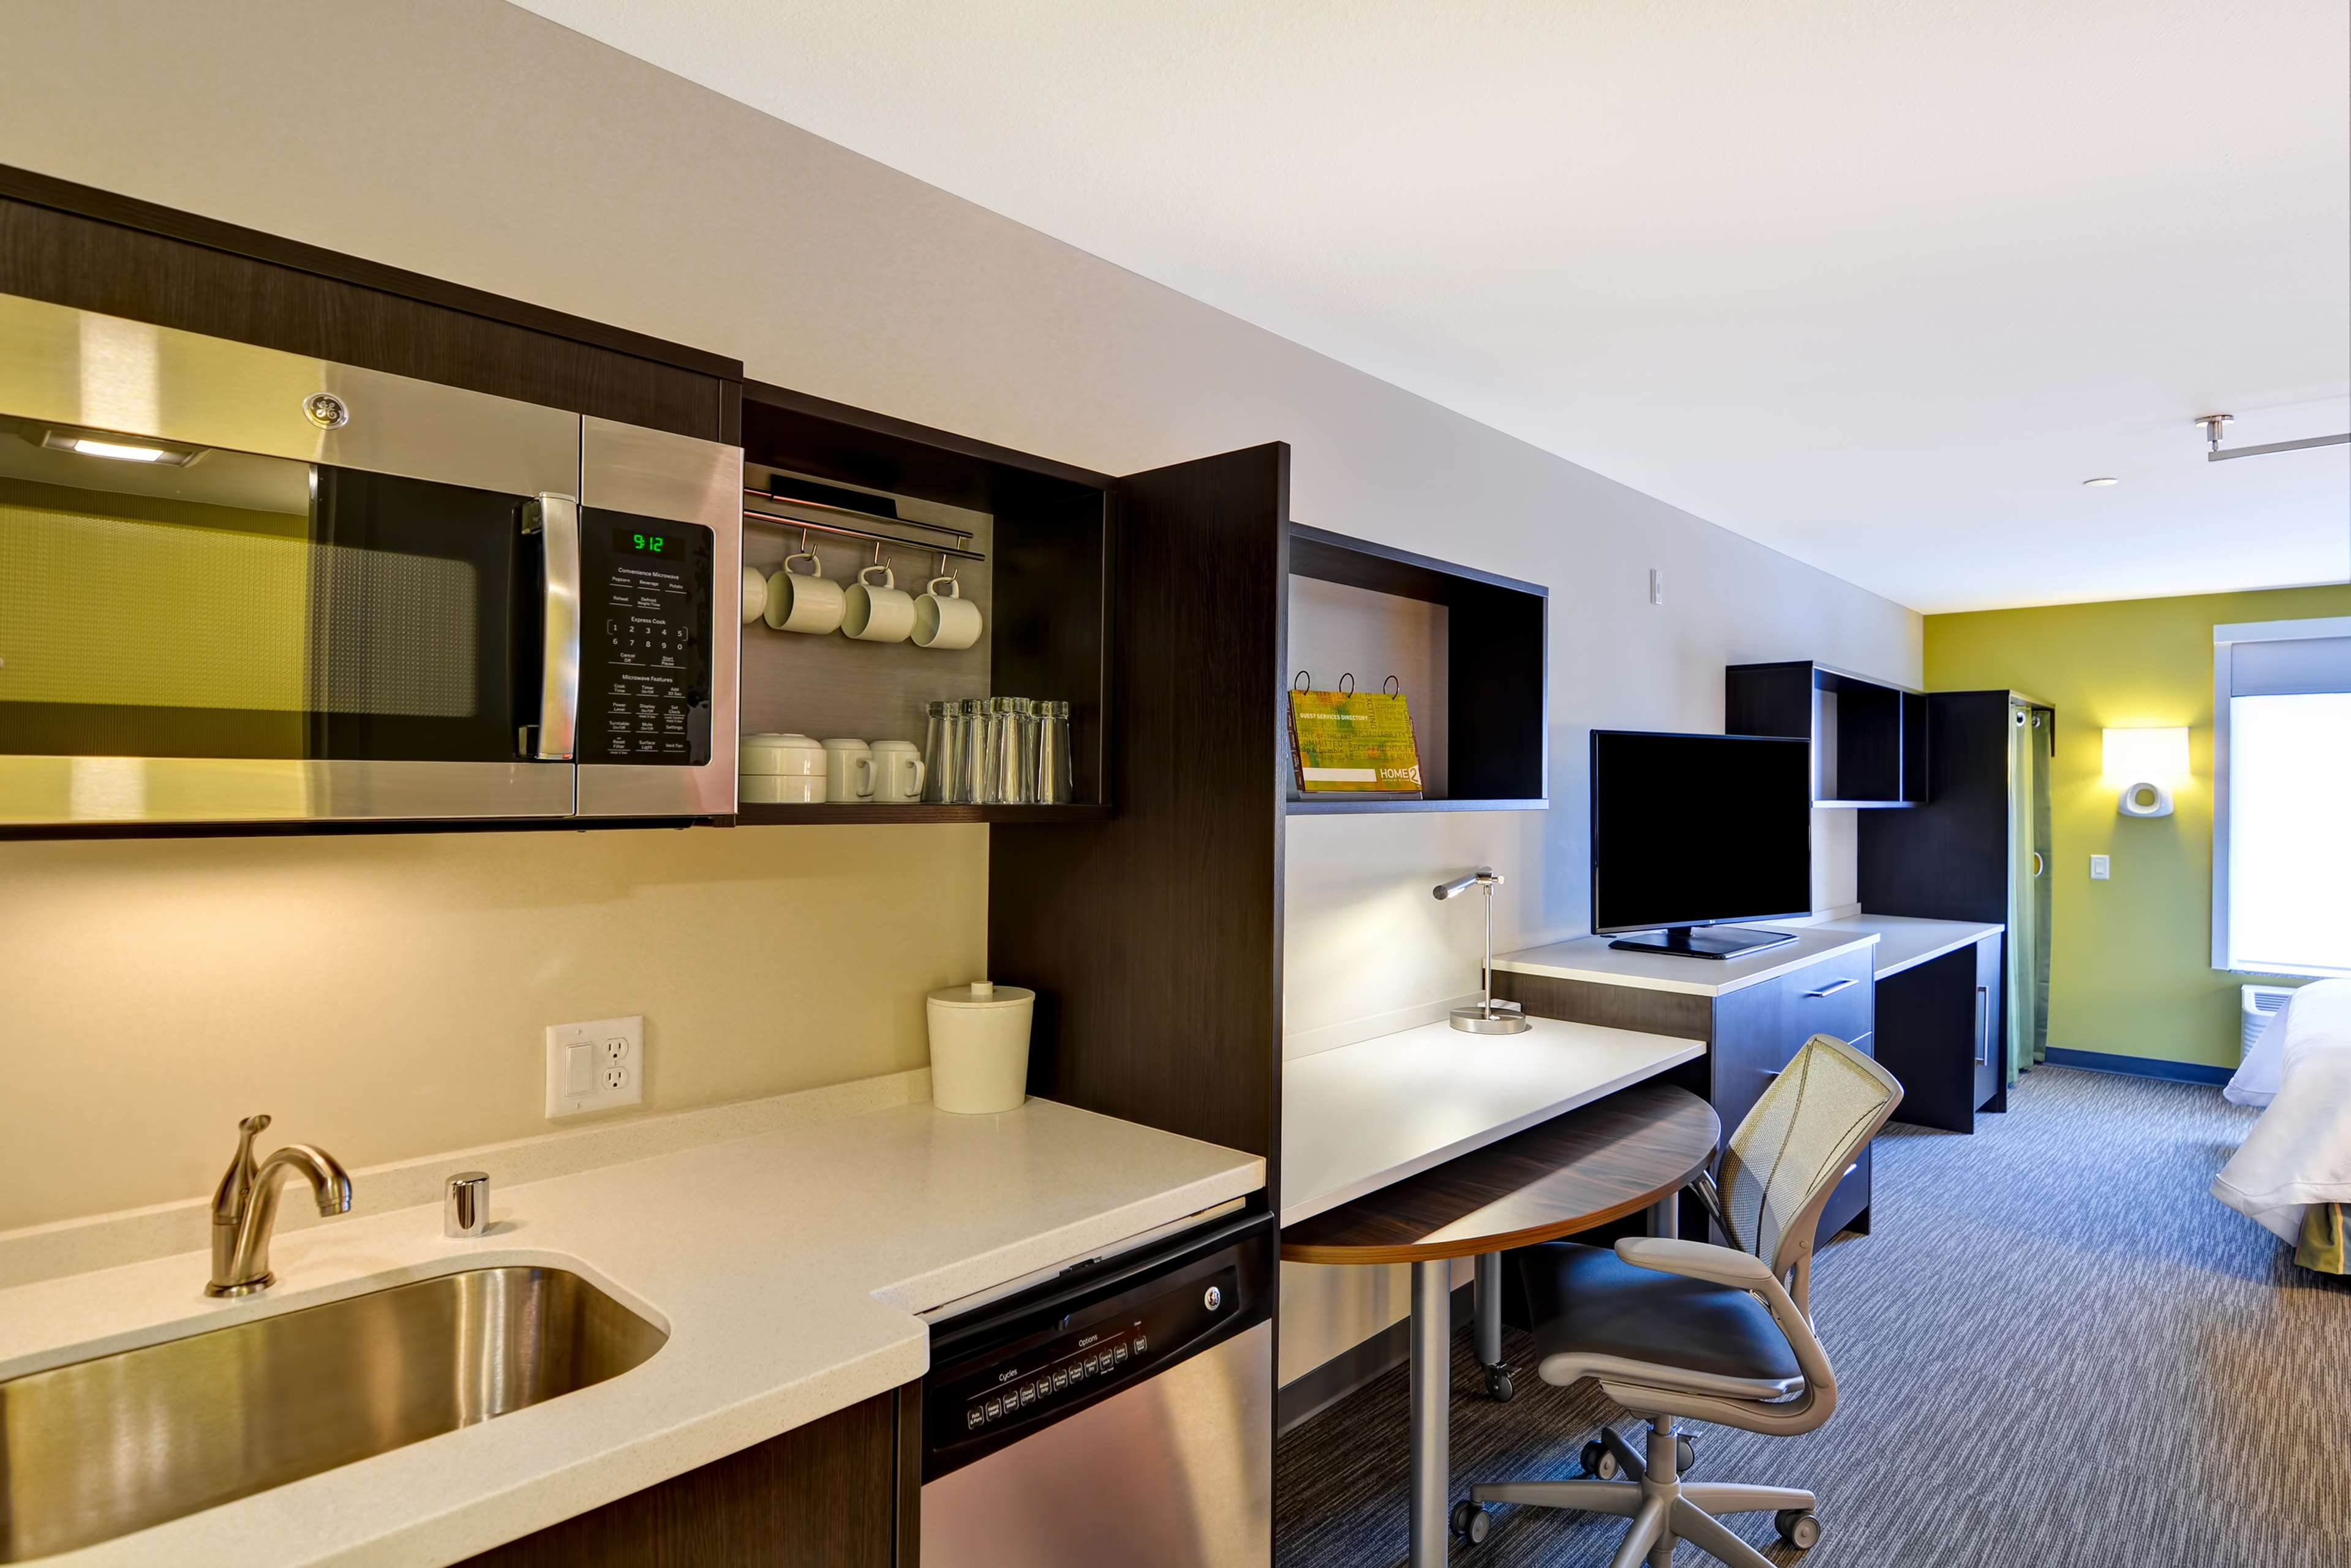 Home2 Suites by Hilton Green Bay image 15